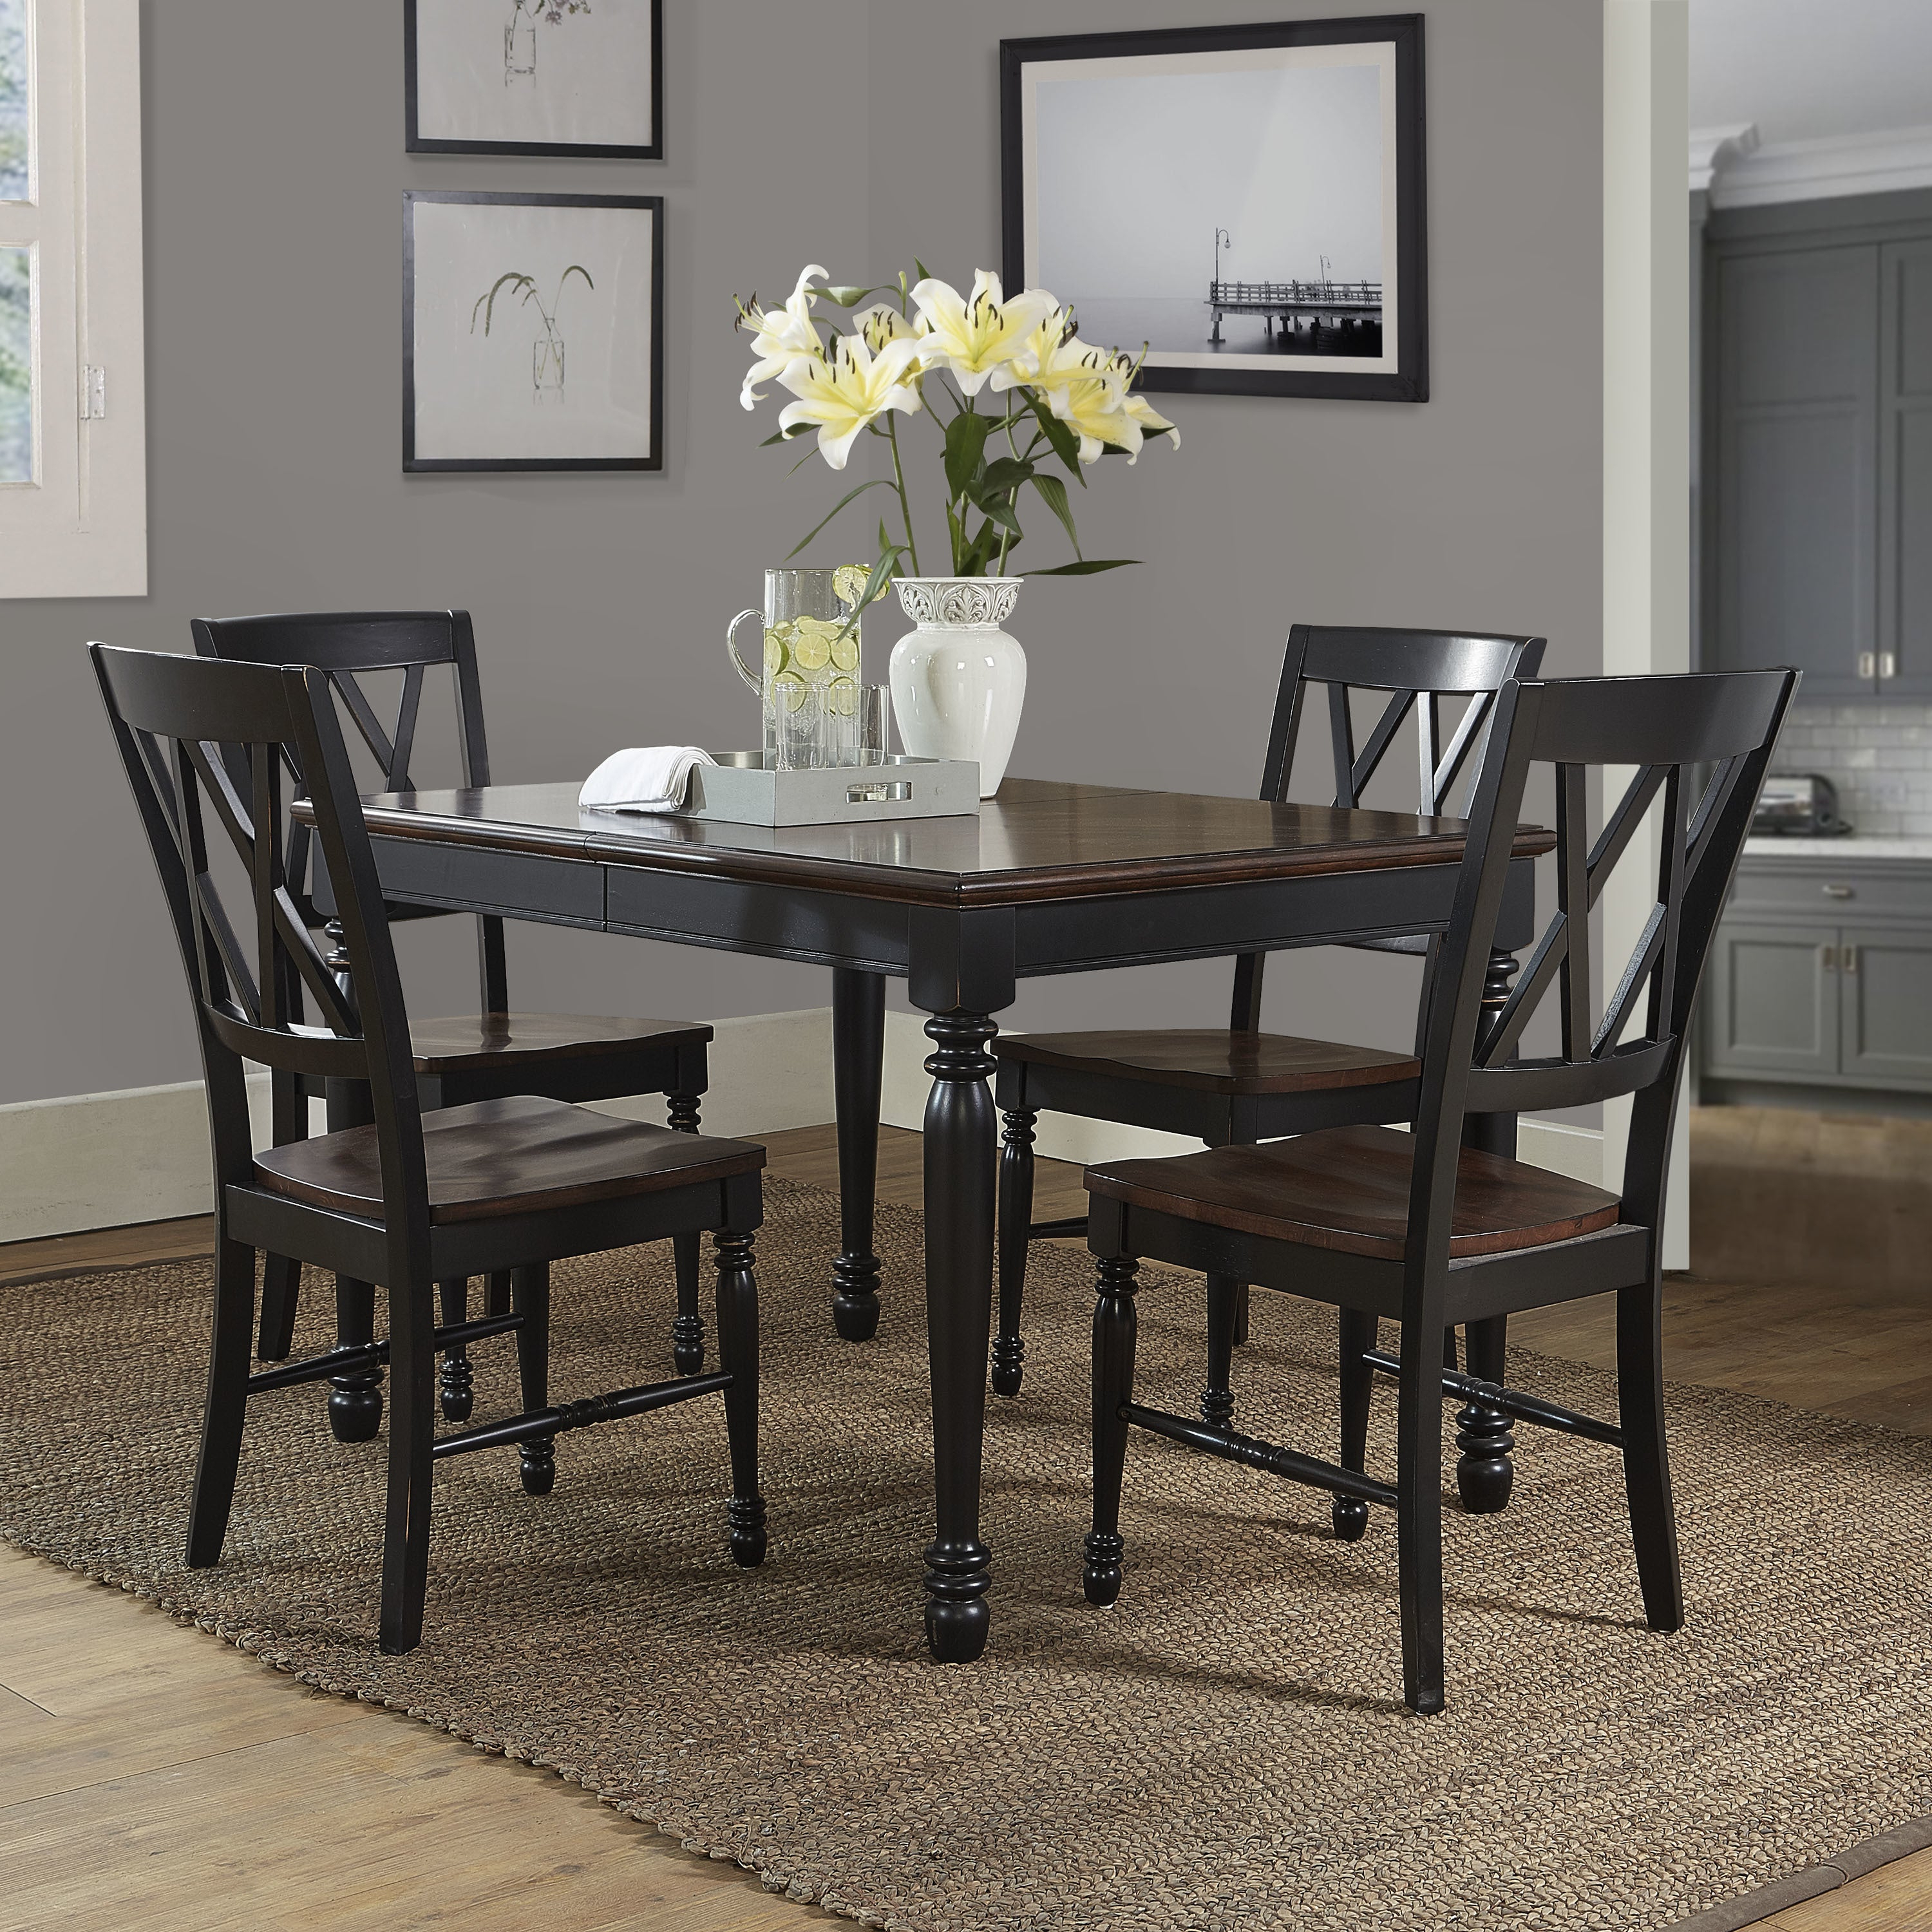 Popular Laconia 7 Pieces Solid Wood Dining Sets (Set Of 7) Pertaining To Shop Shelby Black Wood 5 Piece Dining Set – Free Shipping Today (View 17 of 25)